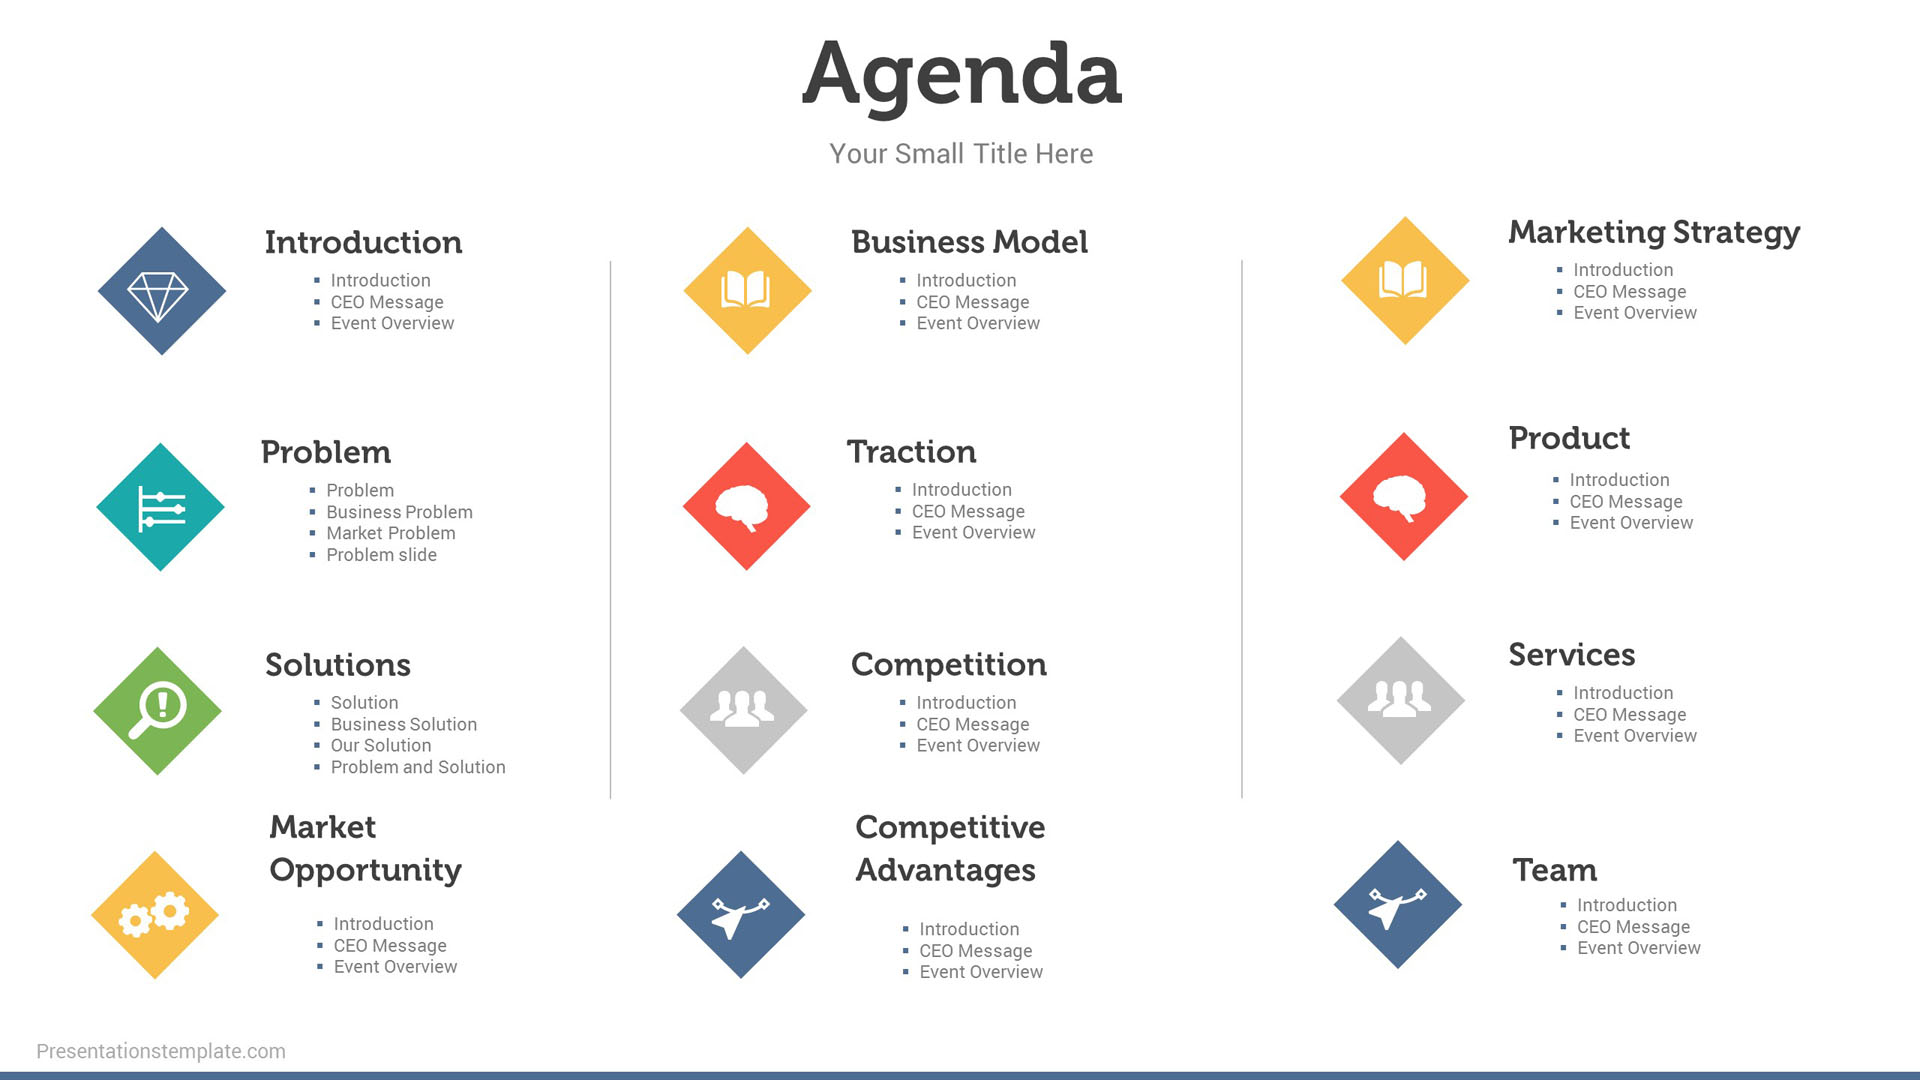 agenda and power point presentation Project kick off meeting ppt template with agenda for presentation download powerpoint slides include plan, timeline, deliverable,team structure and communication for the team.